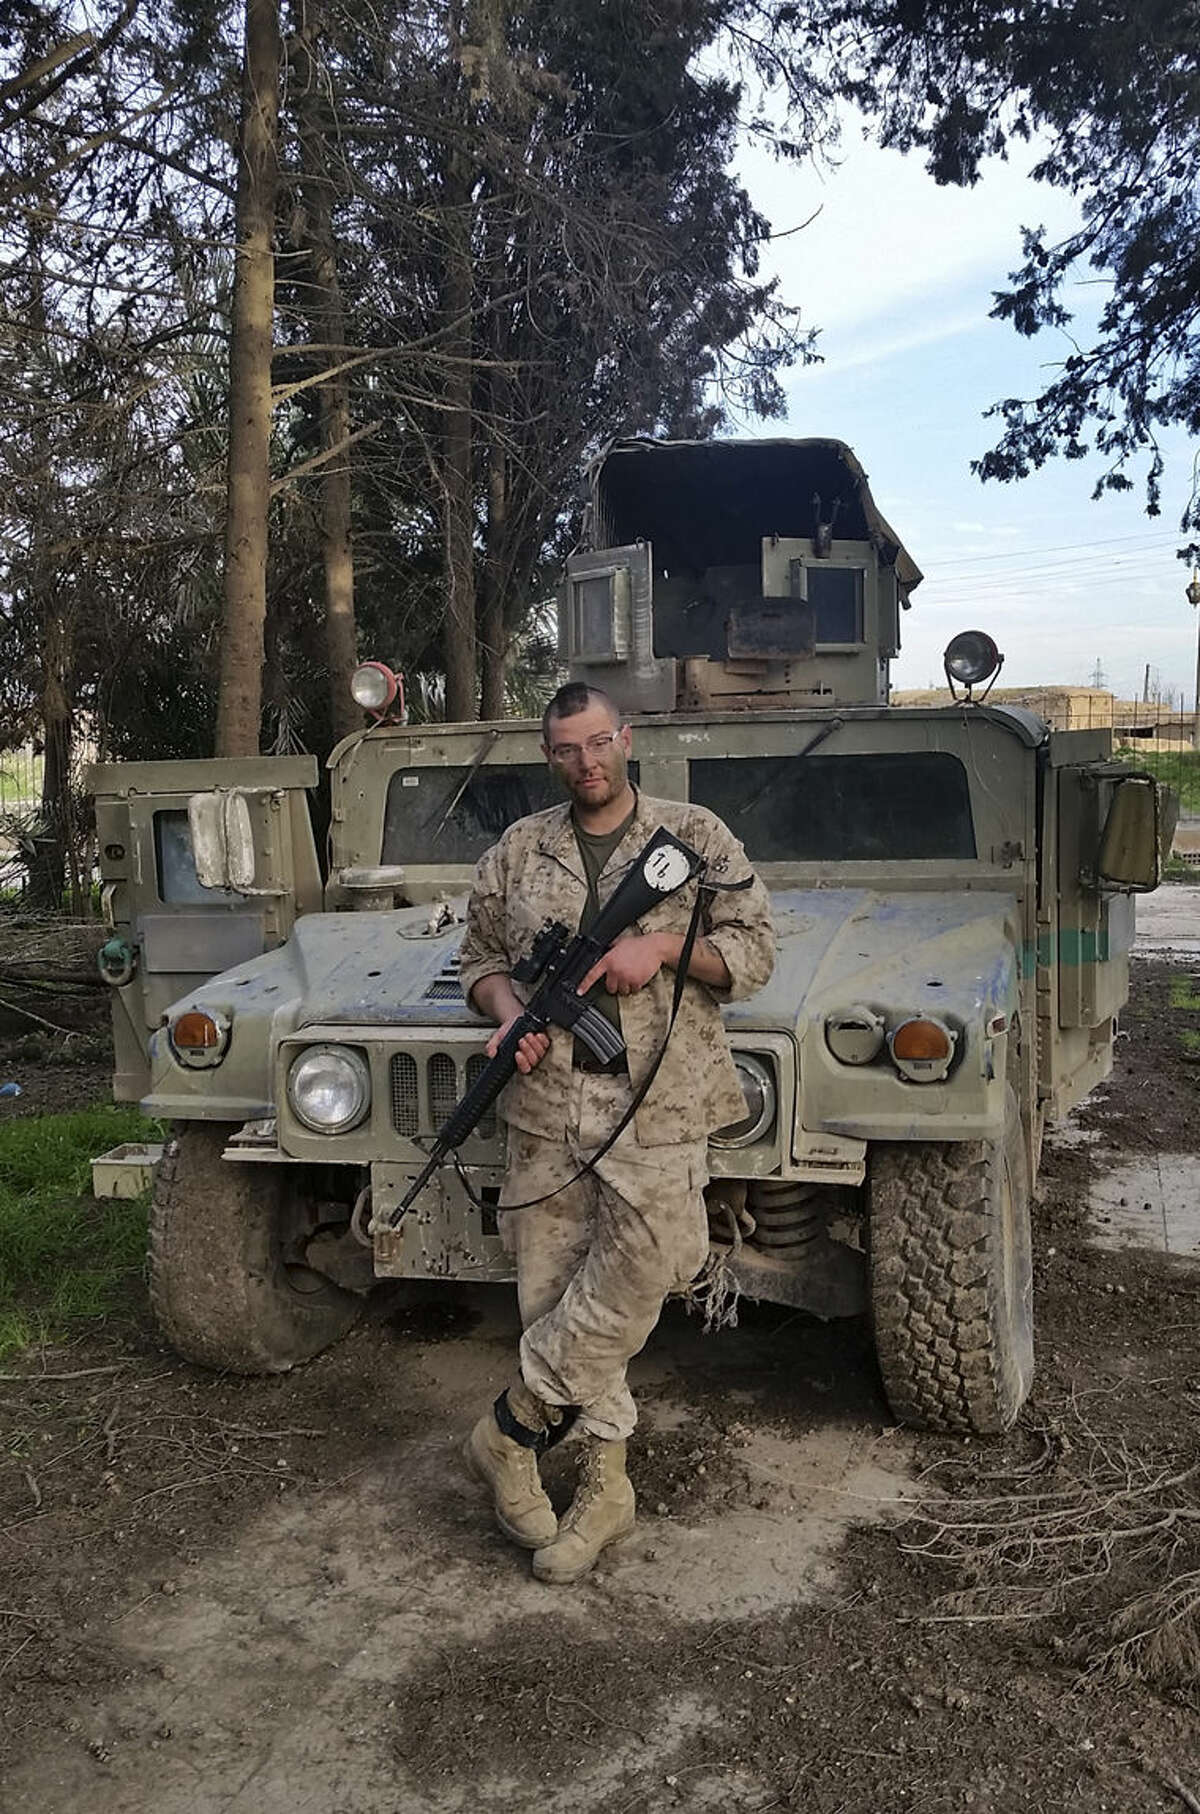 In this Feb. 26, 2015 photo, Jamie Lane, 29, an American veteran from Mount Pleasant, poses for a picture in front of an Iraqi Army Humvee captured and later abandoned by Islamic State militants in Tel Hamis, Syria. Lane is among a growing number of Iraq war veterans returning to the battlefield, this time without the American military, to join in the fight against the Sunni militants who now hold territory in a third of Iraq and Syria.